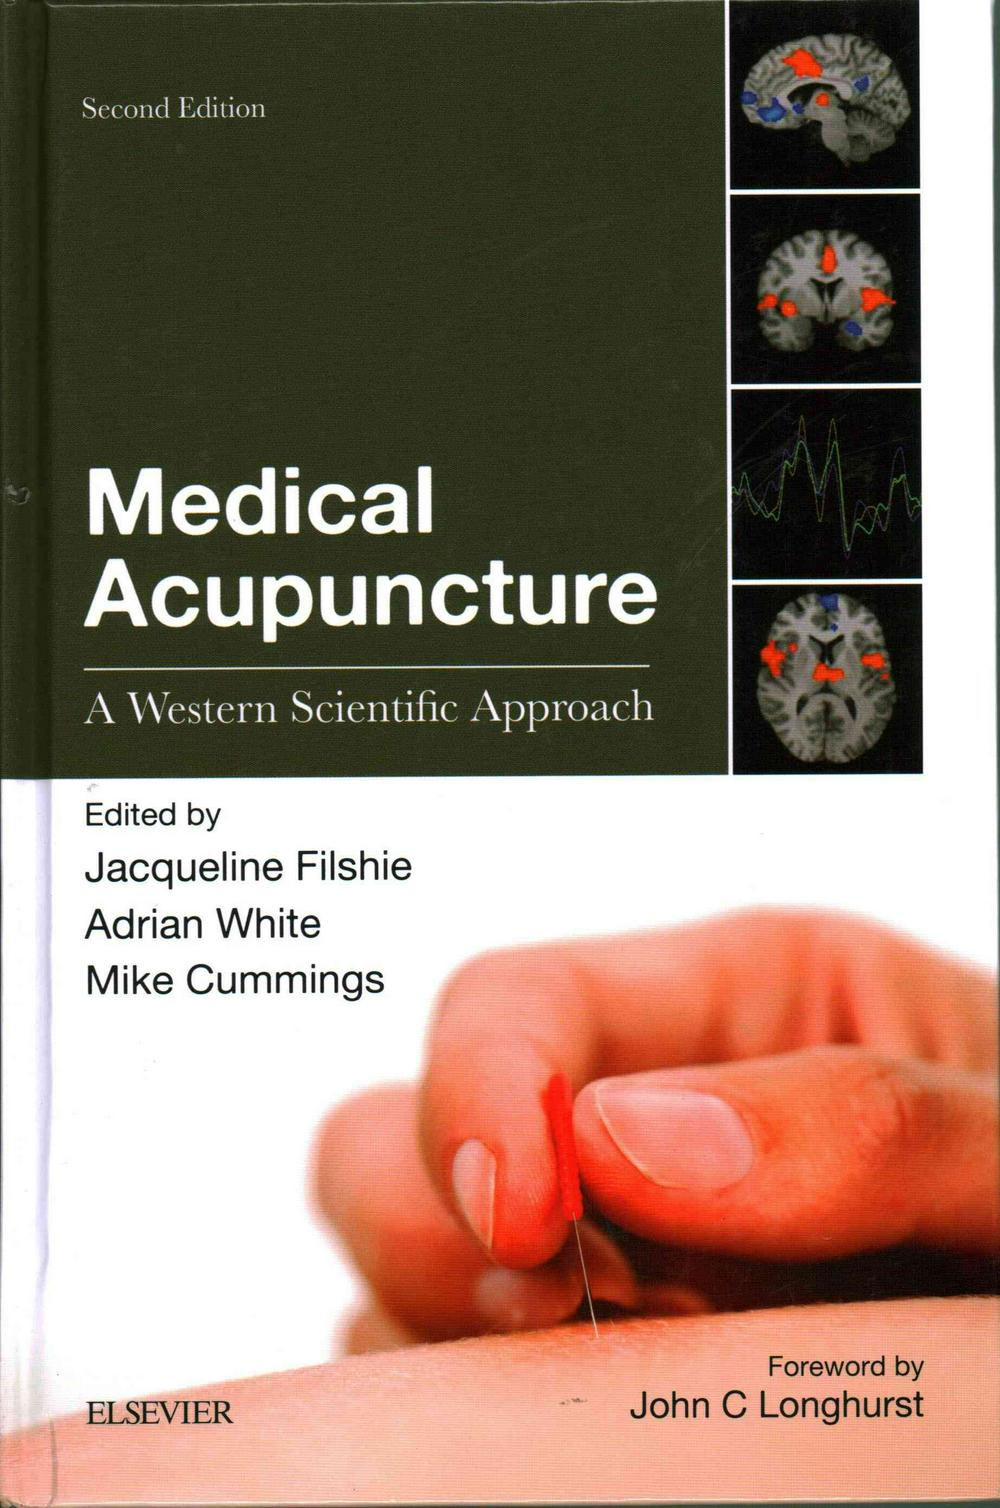 Medical Acupuncture: A Western Scientific Approach, 2e